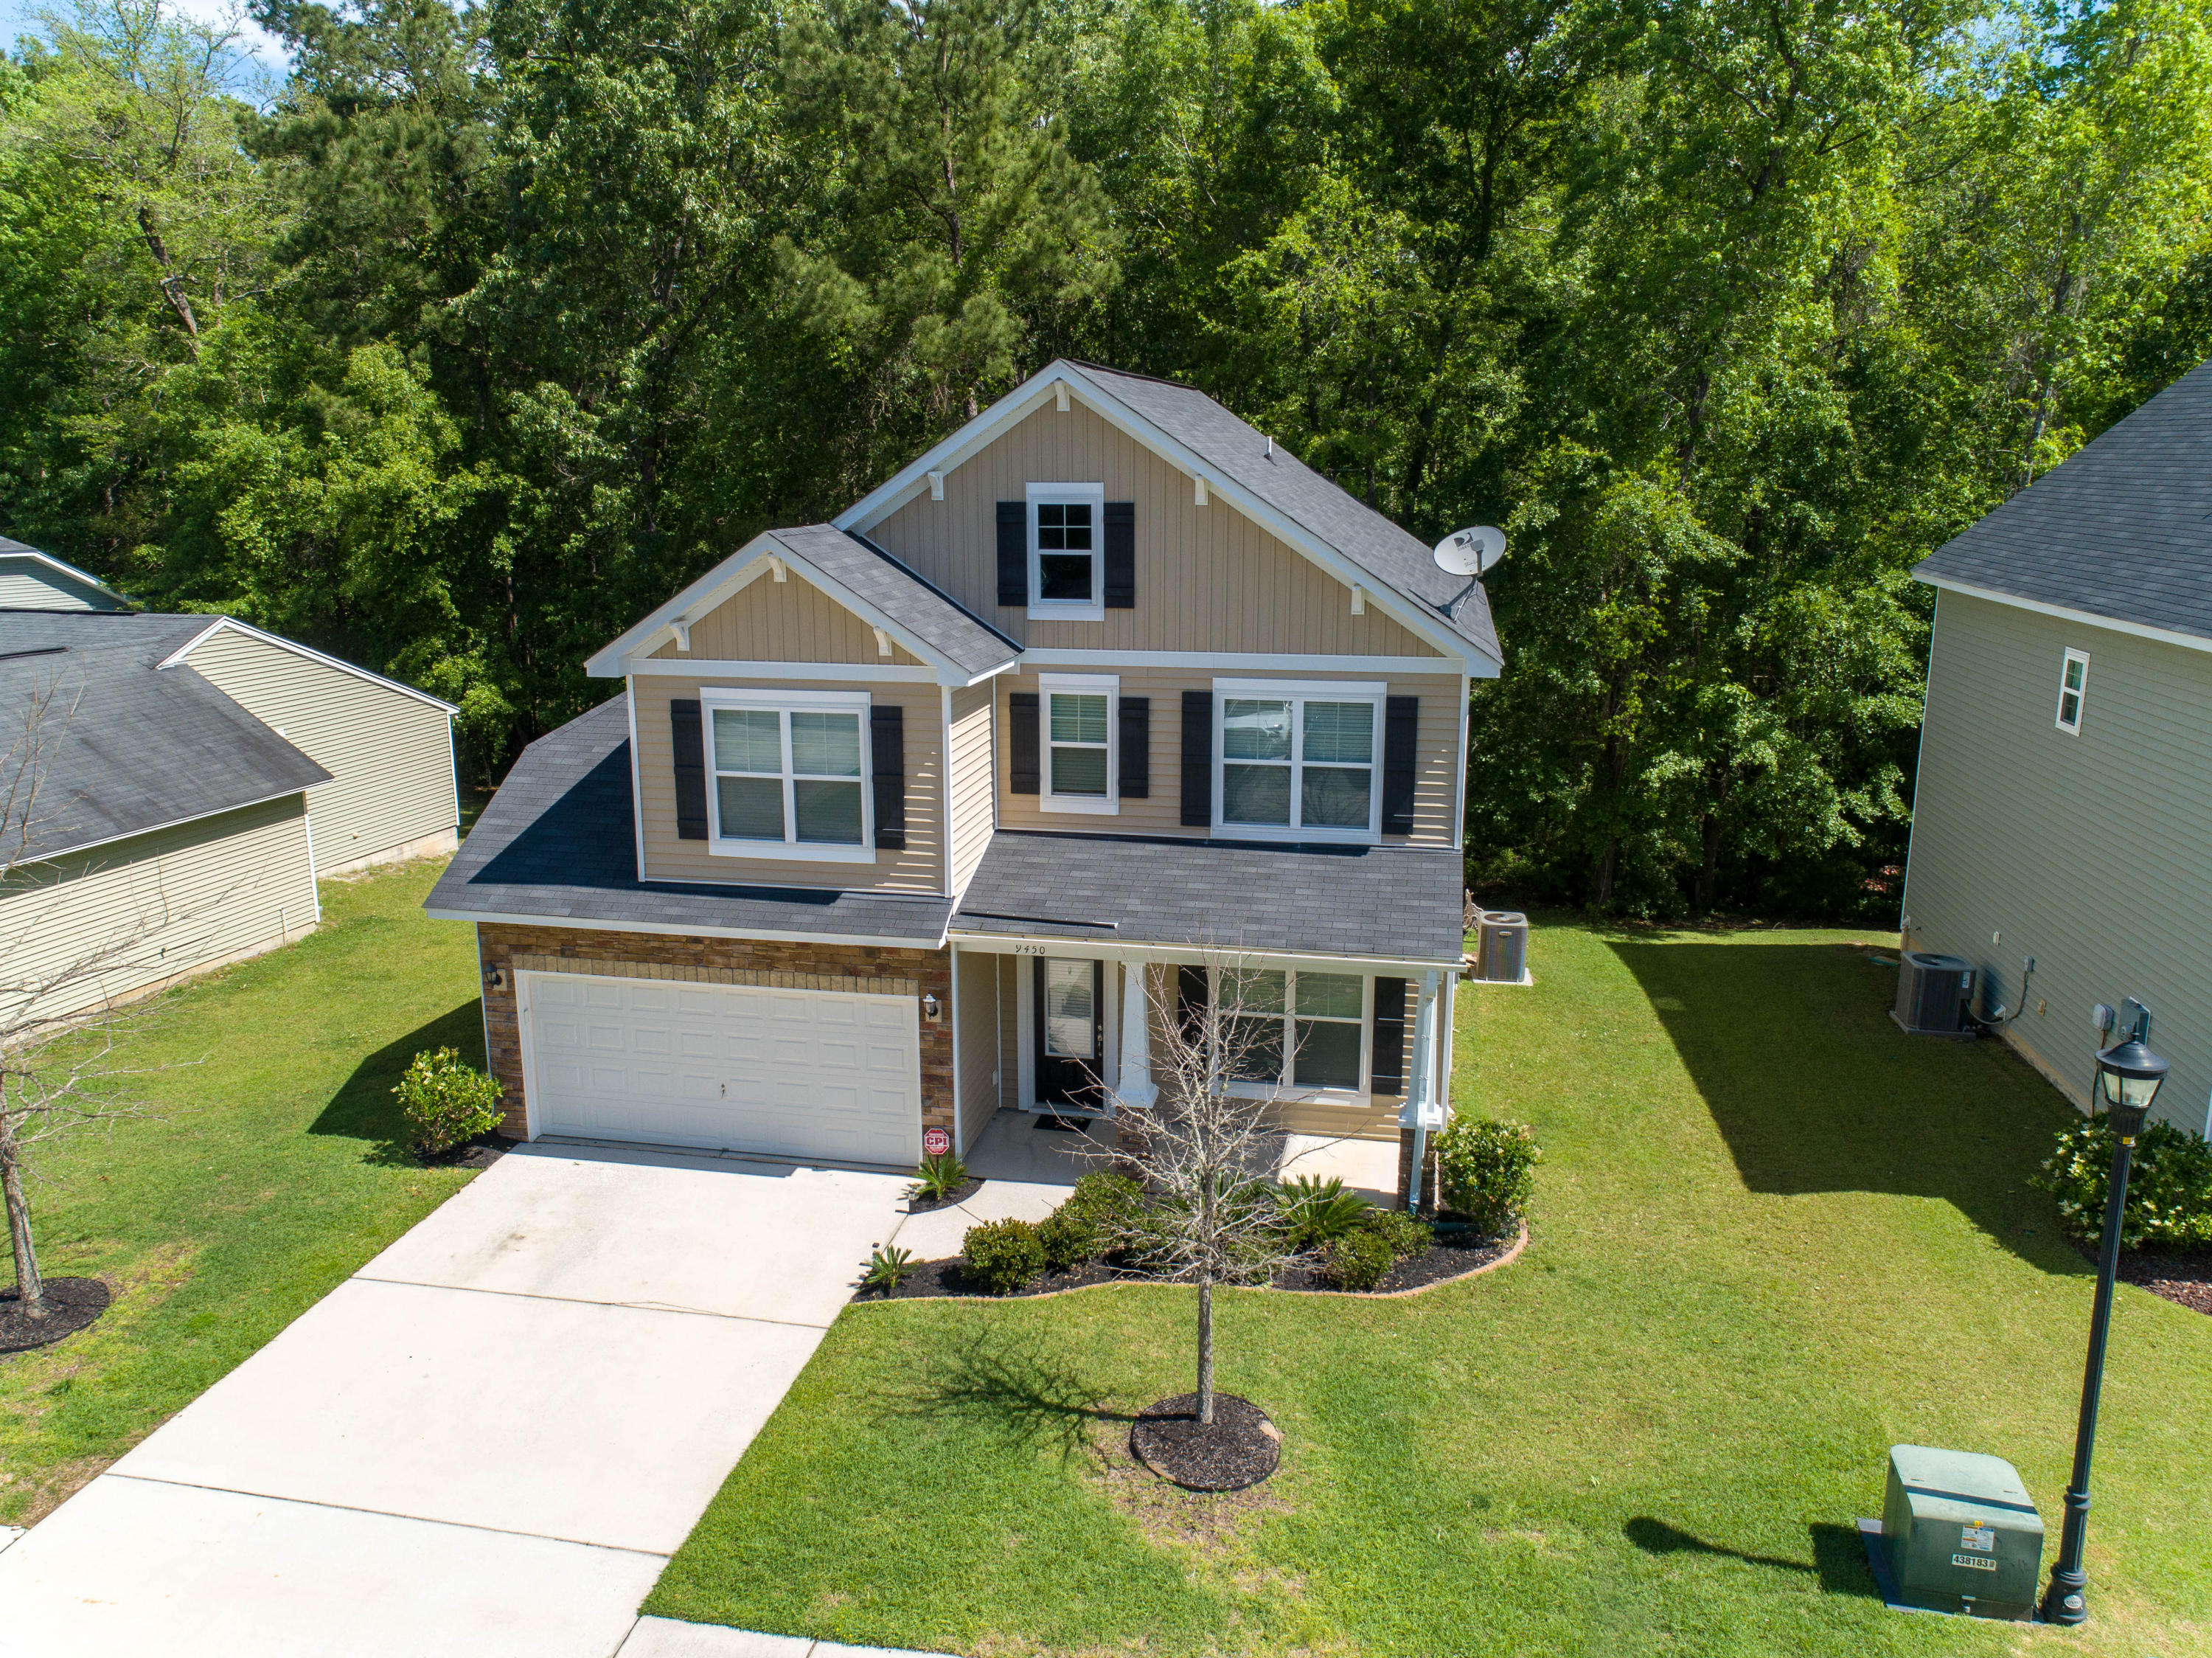 9450 Netted Charm Court Ladson, SC 29456